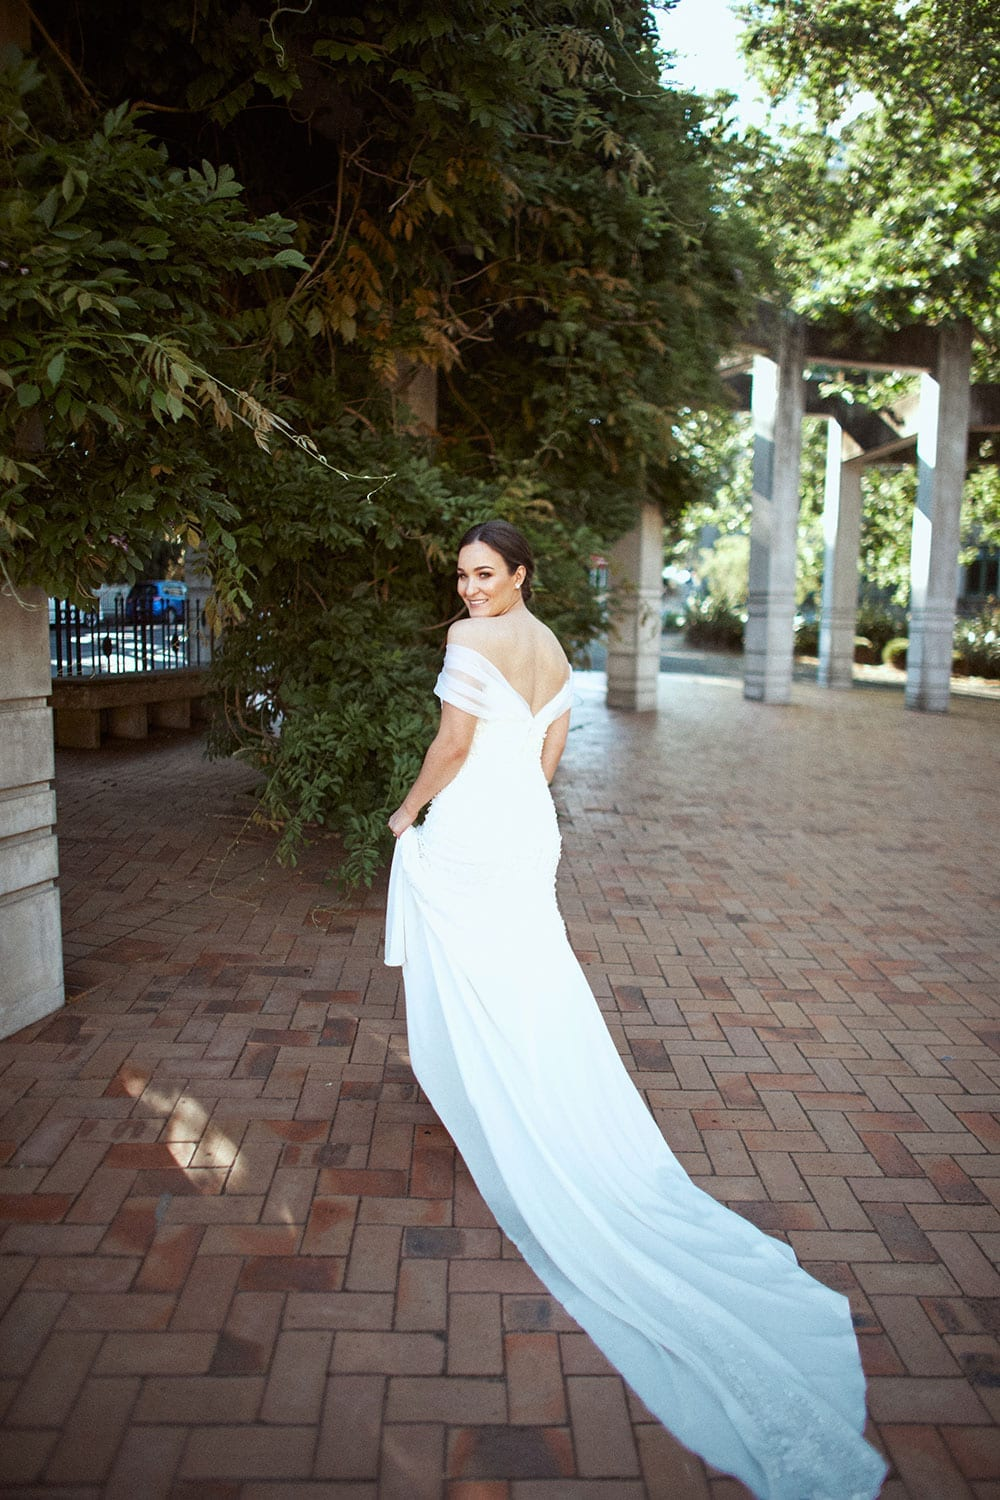 Vinka Design Features Real Weddings - bride in custom made gown with stunning silhouette and lace. Bride faces away with beautiful train flowing behind